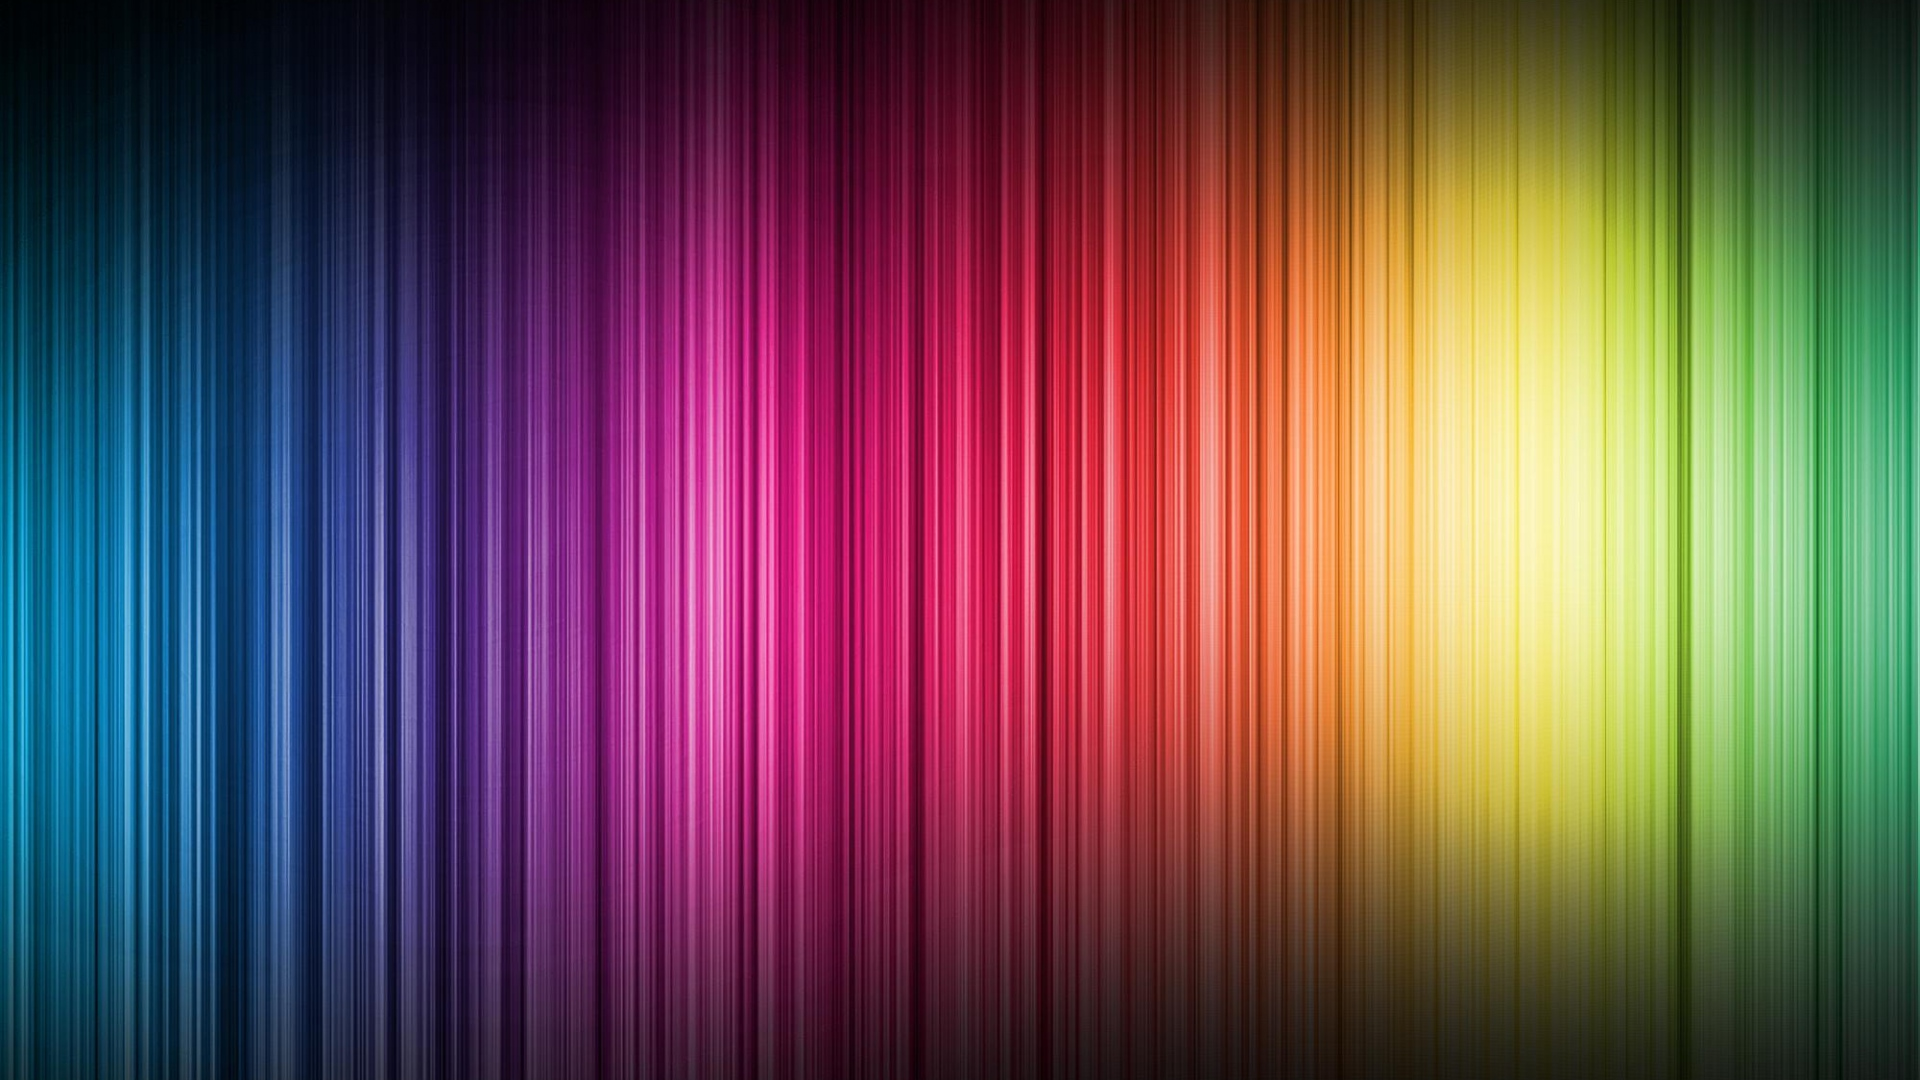 spectrum hd wallpaper - photo #34